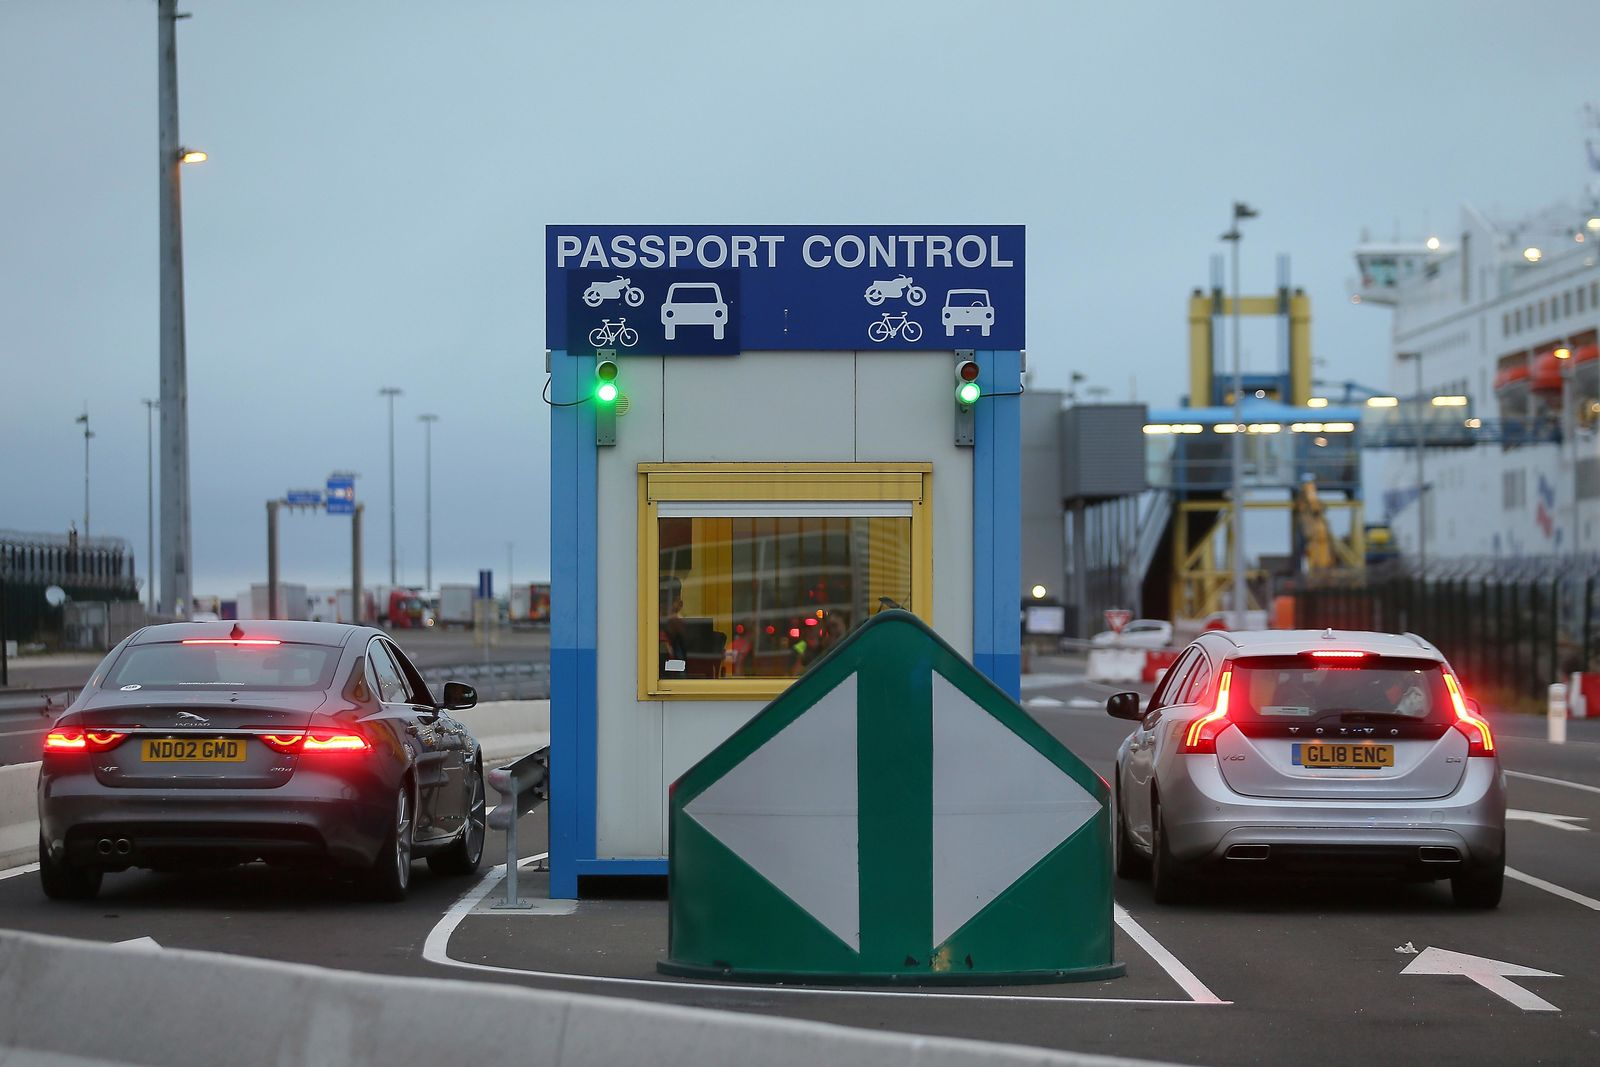 Cars bearing British license plates stop at a passport control booth at the transit zone at the port of Ouistreham, Normandy, Thursday, Sept.12, 2019. France has trained 600 new customs officers and built extra parking lots arounds its ports to hold vehicles that will have to go through extra checks if there is no agreement ahead of Britain's exit from the EU, currently scheduled on Oct. 31. (AP Photo/David Vincent)